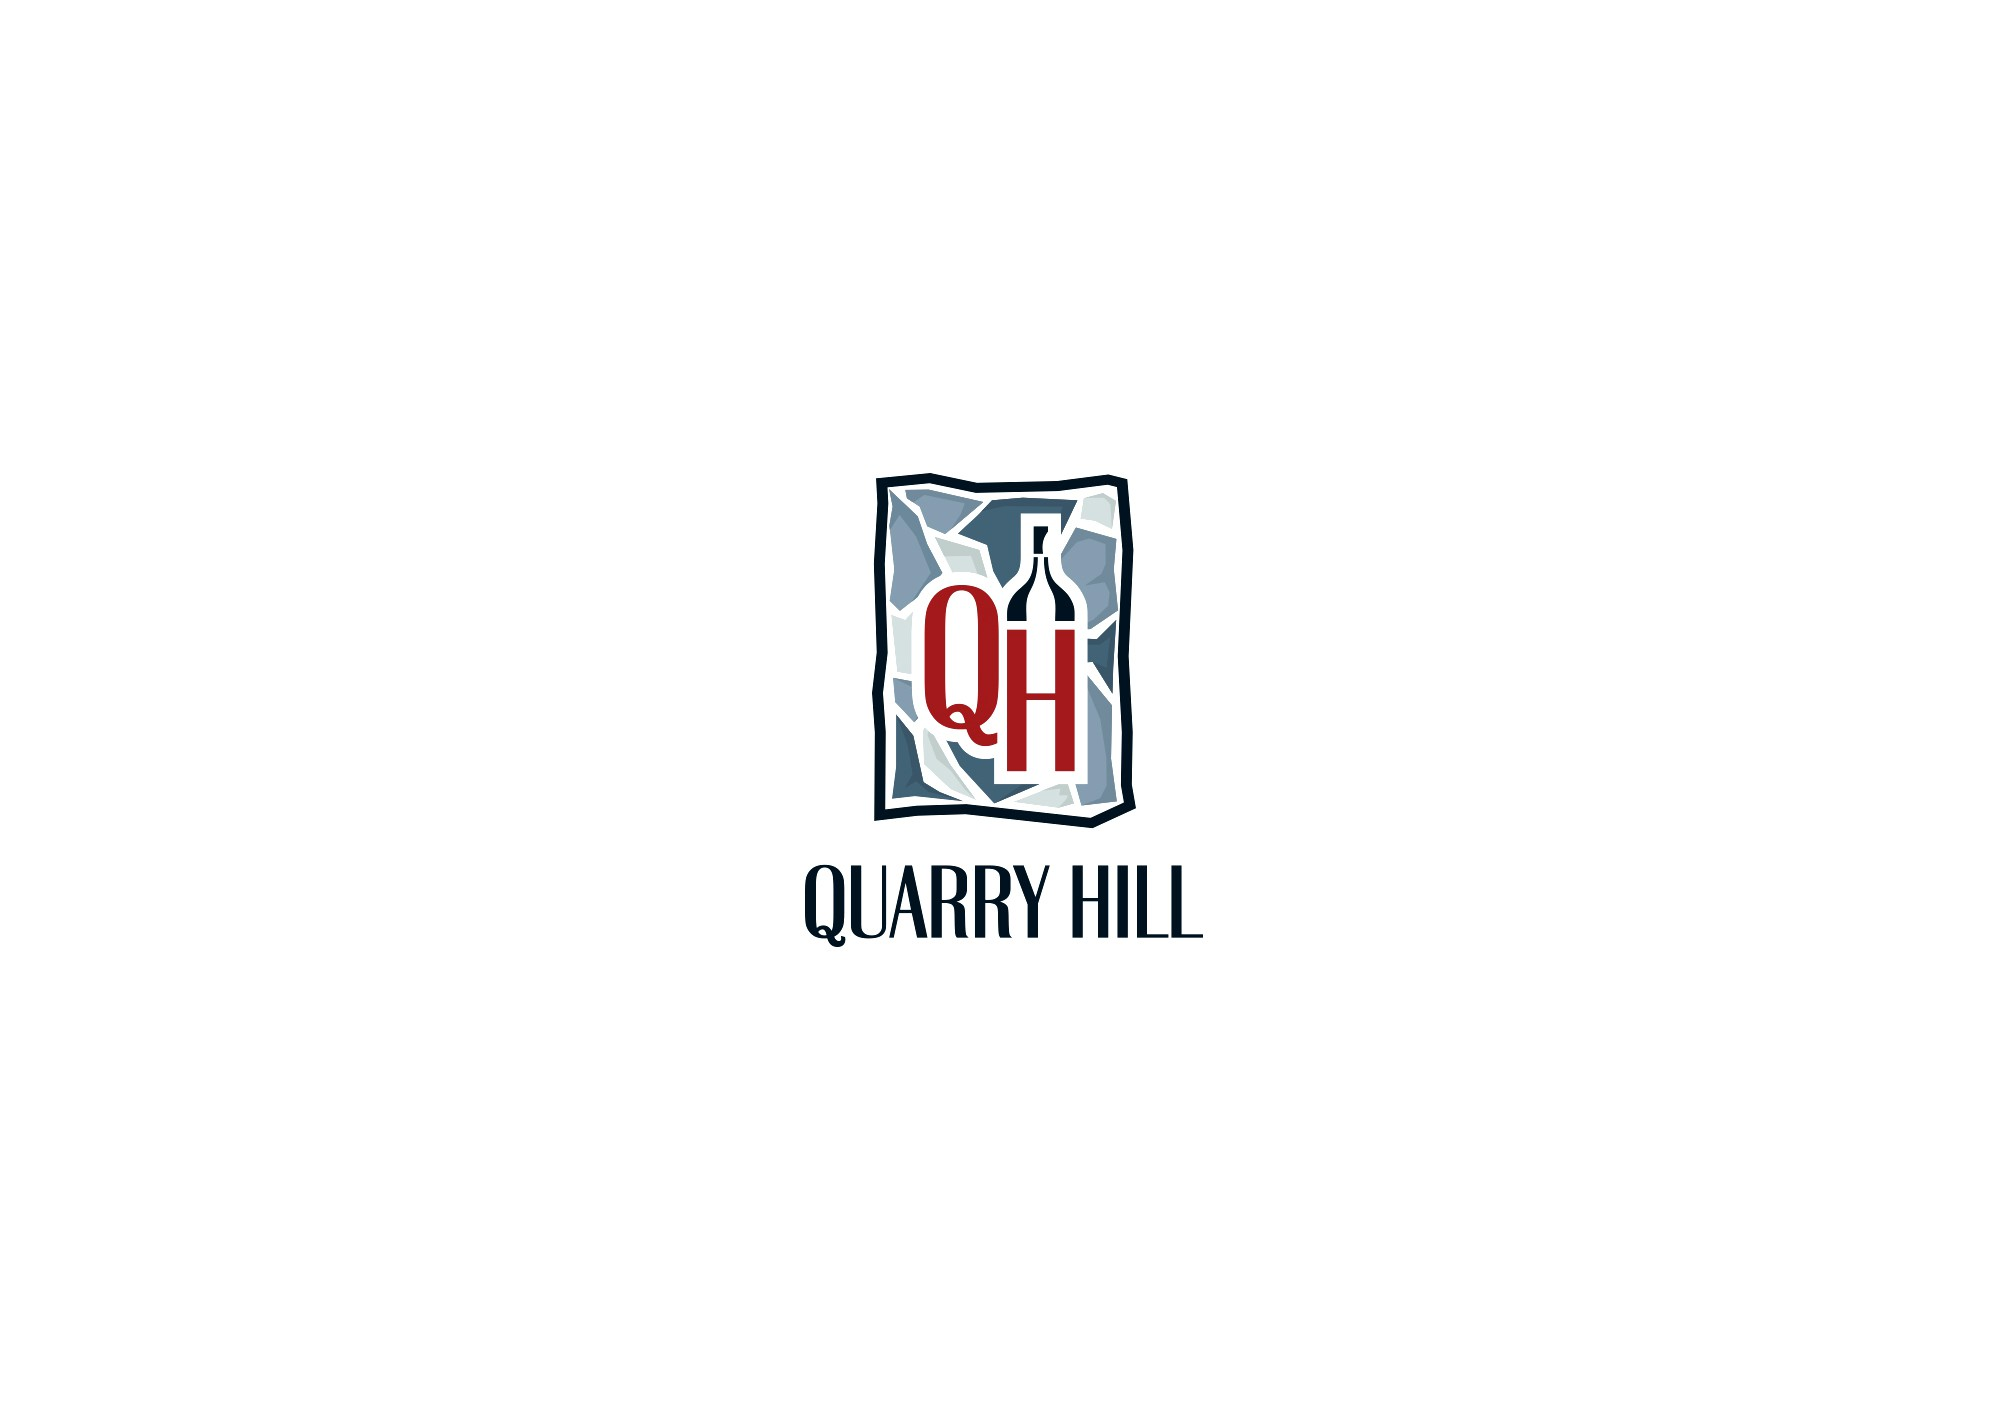 Help Quarry Hill Vineyard and Winery with a new logo